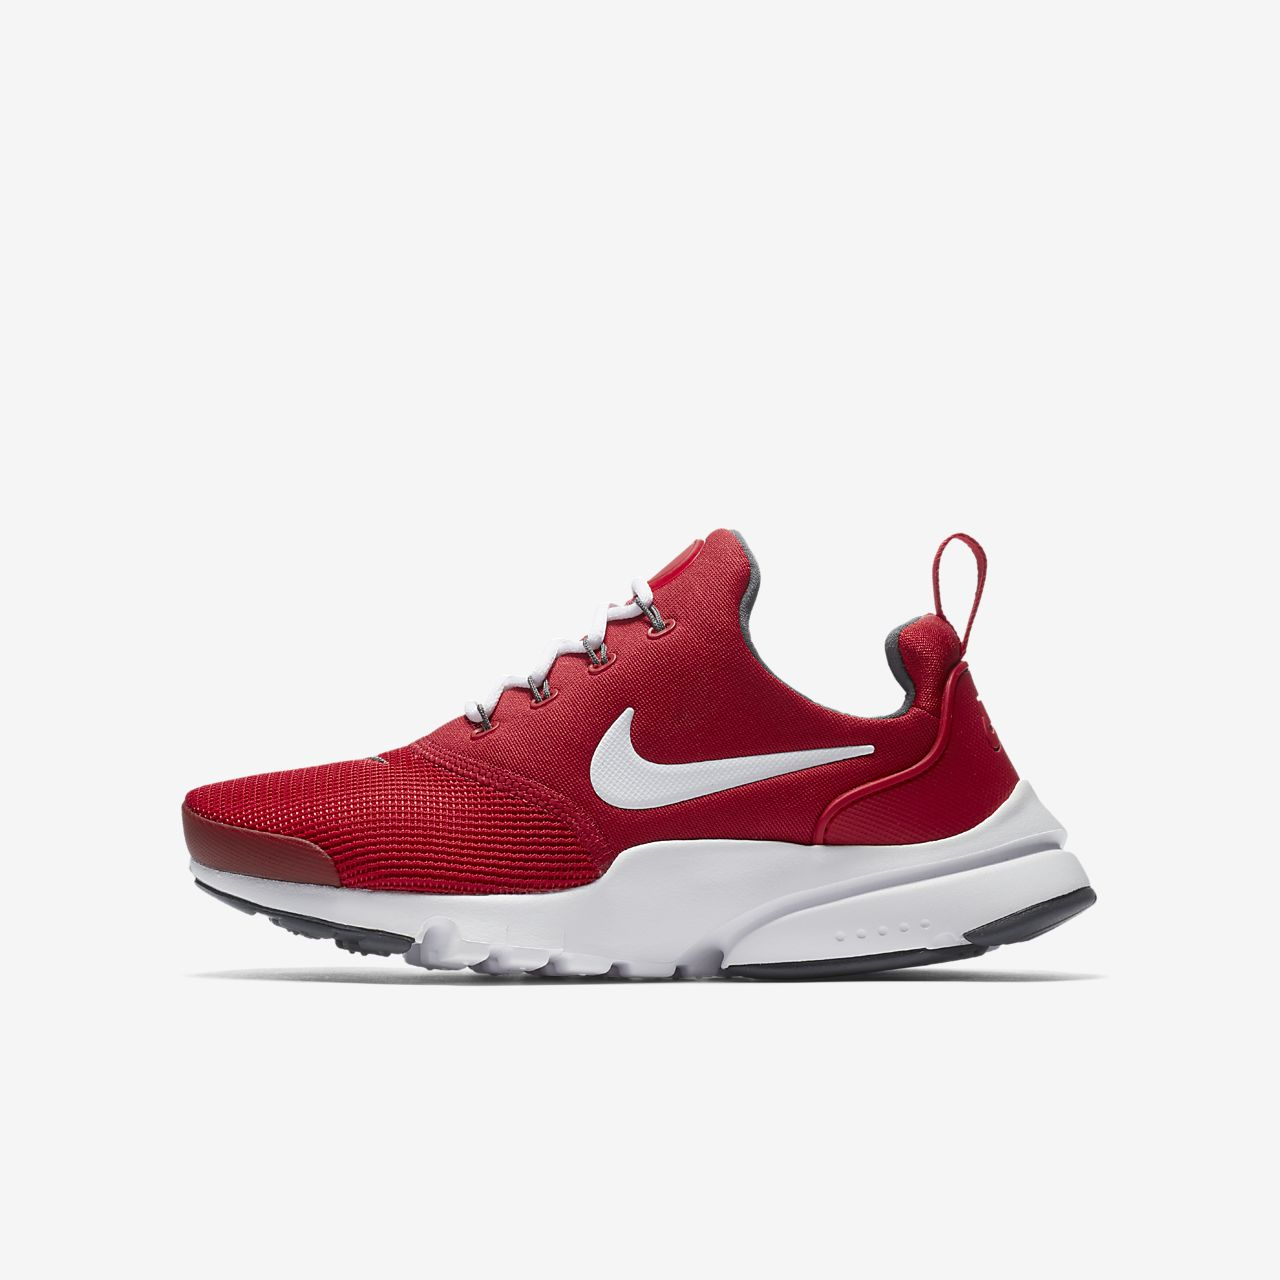 new style 5451d 7718b netherlands nike presto sort b83b0 02429